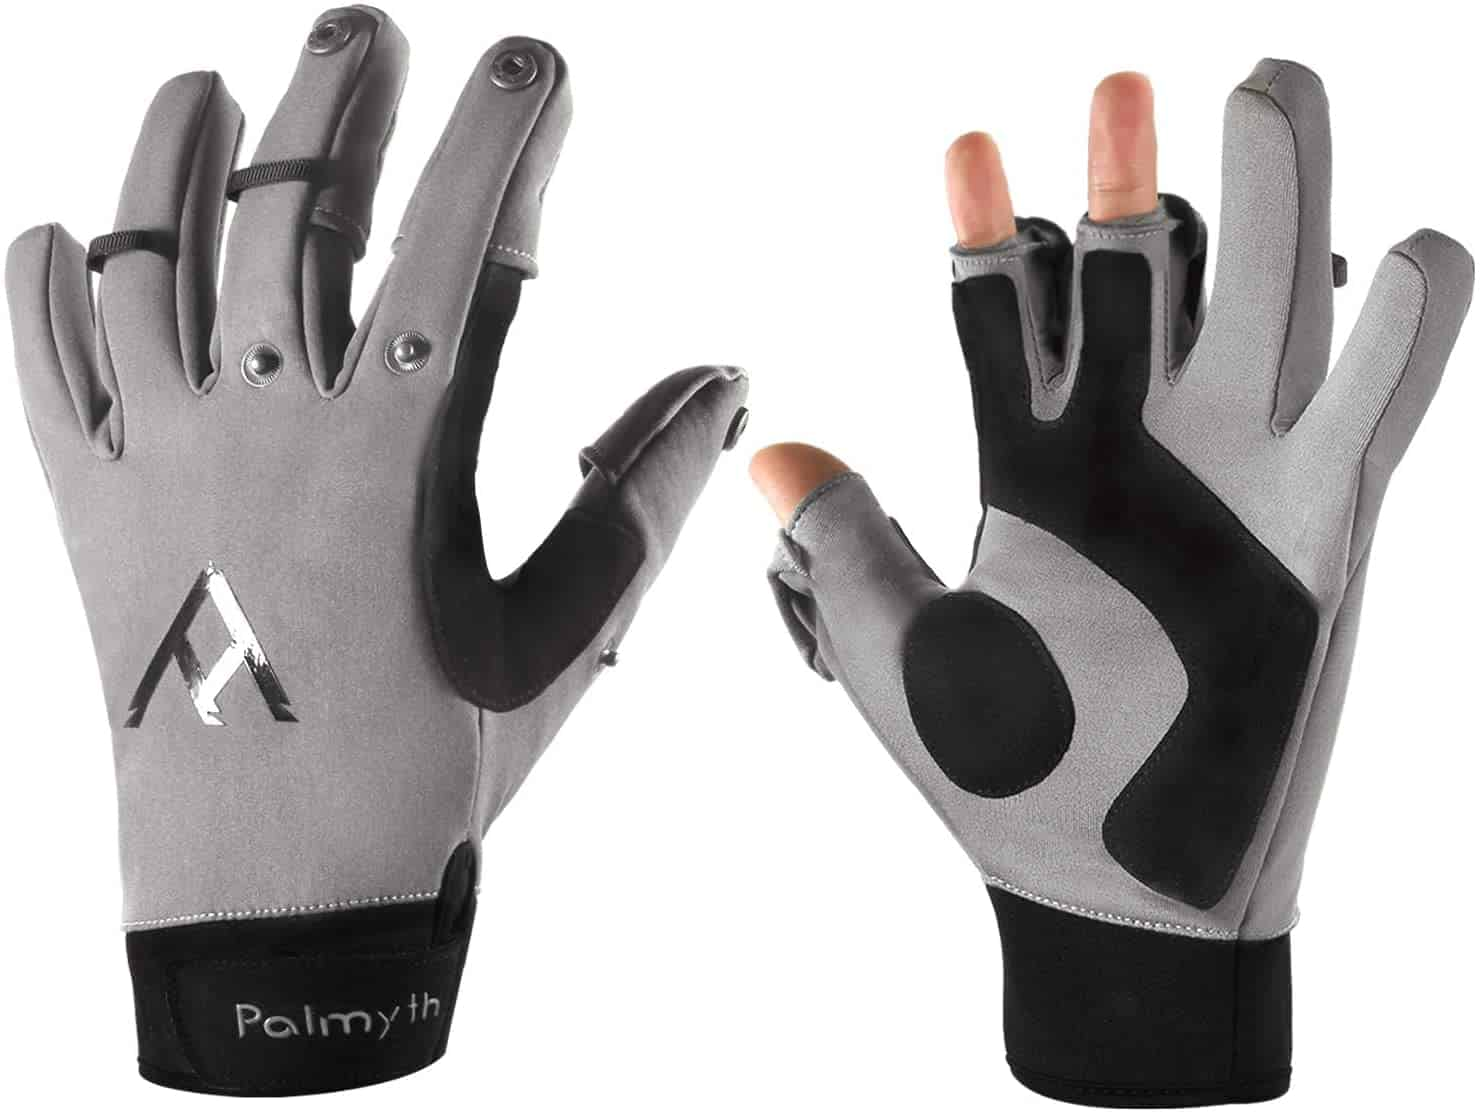 Ice Fishing Gloves by Palmyth